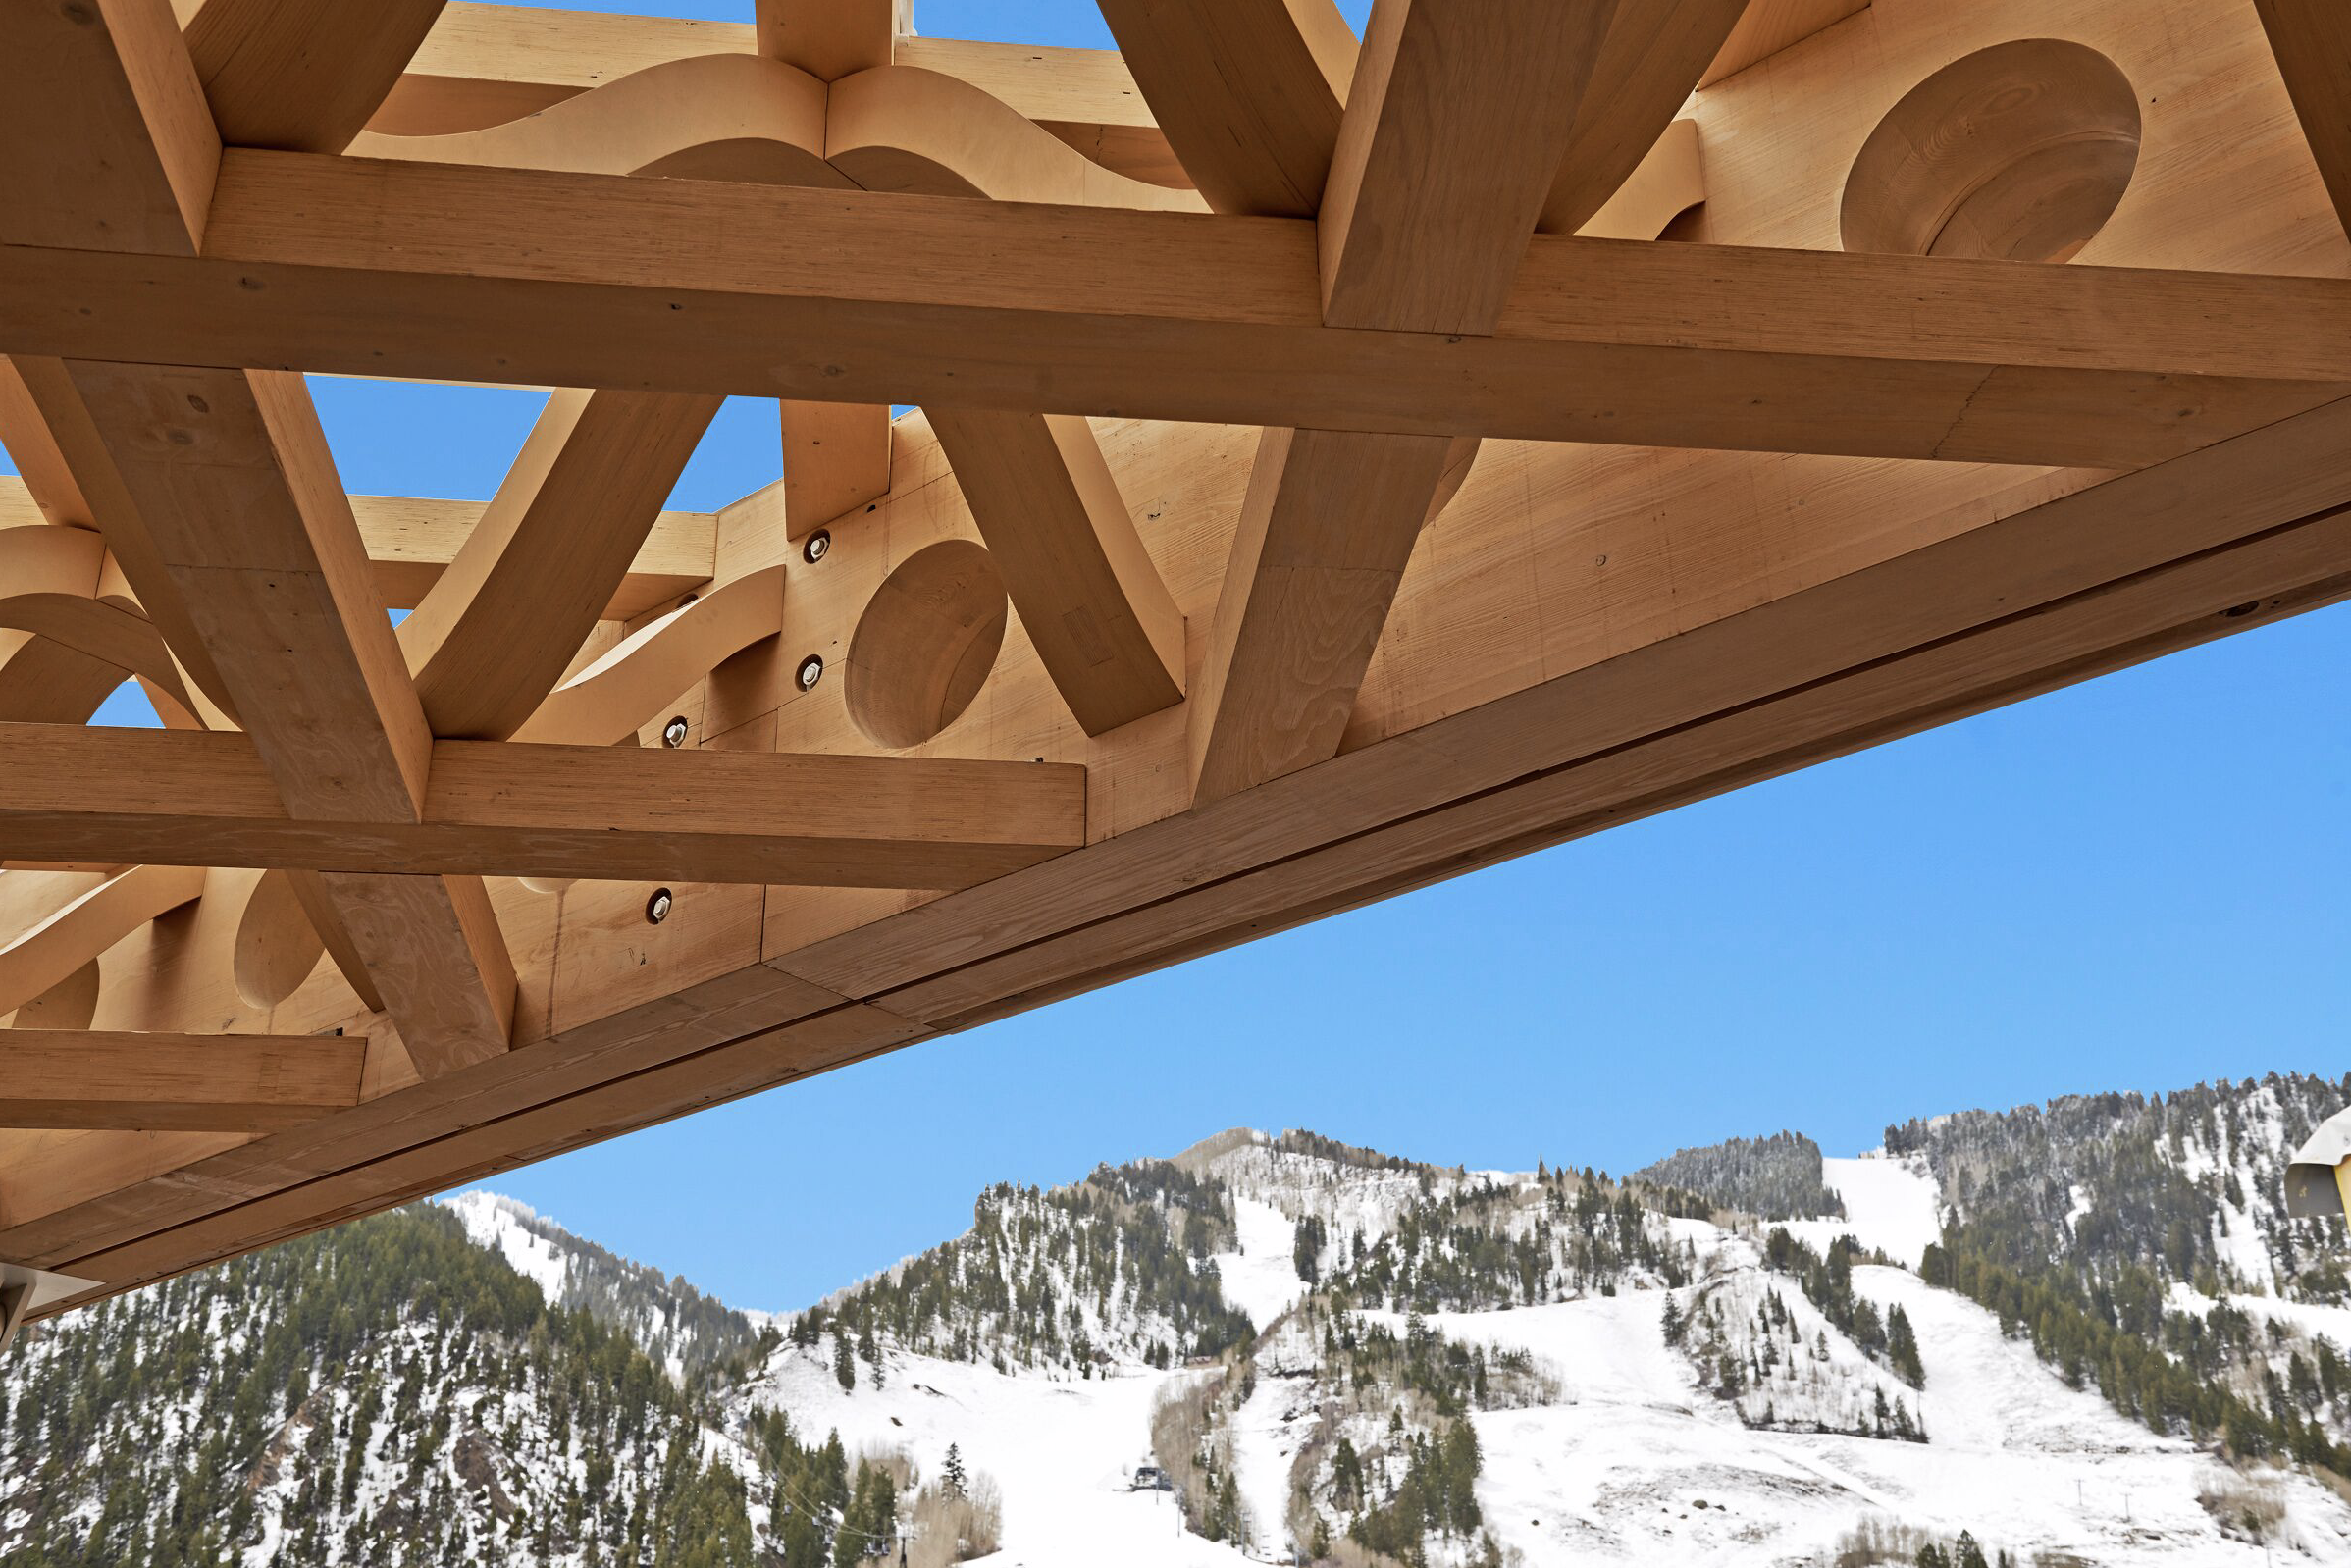 Aspen Art Museum, Aspen, Colorado, Shigeru Bam architect, 2014